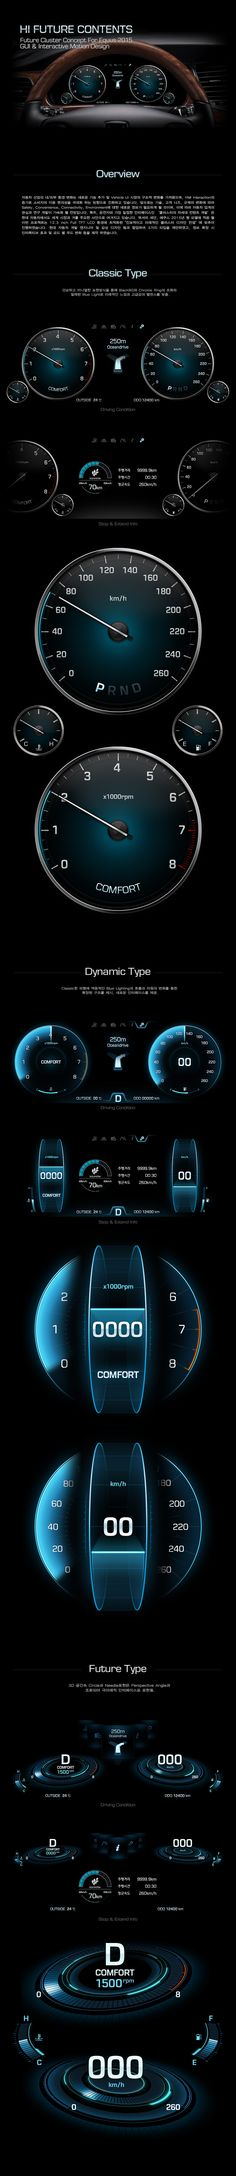 Hyundai Motors 'HI Future Cluster' Interface GUI & Motion Design